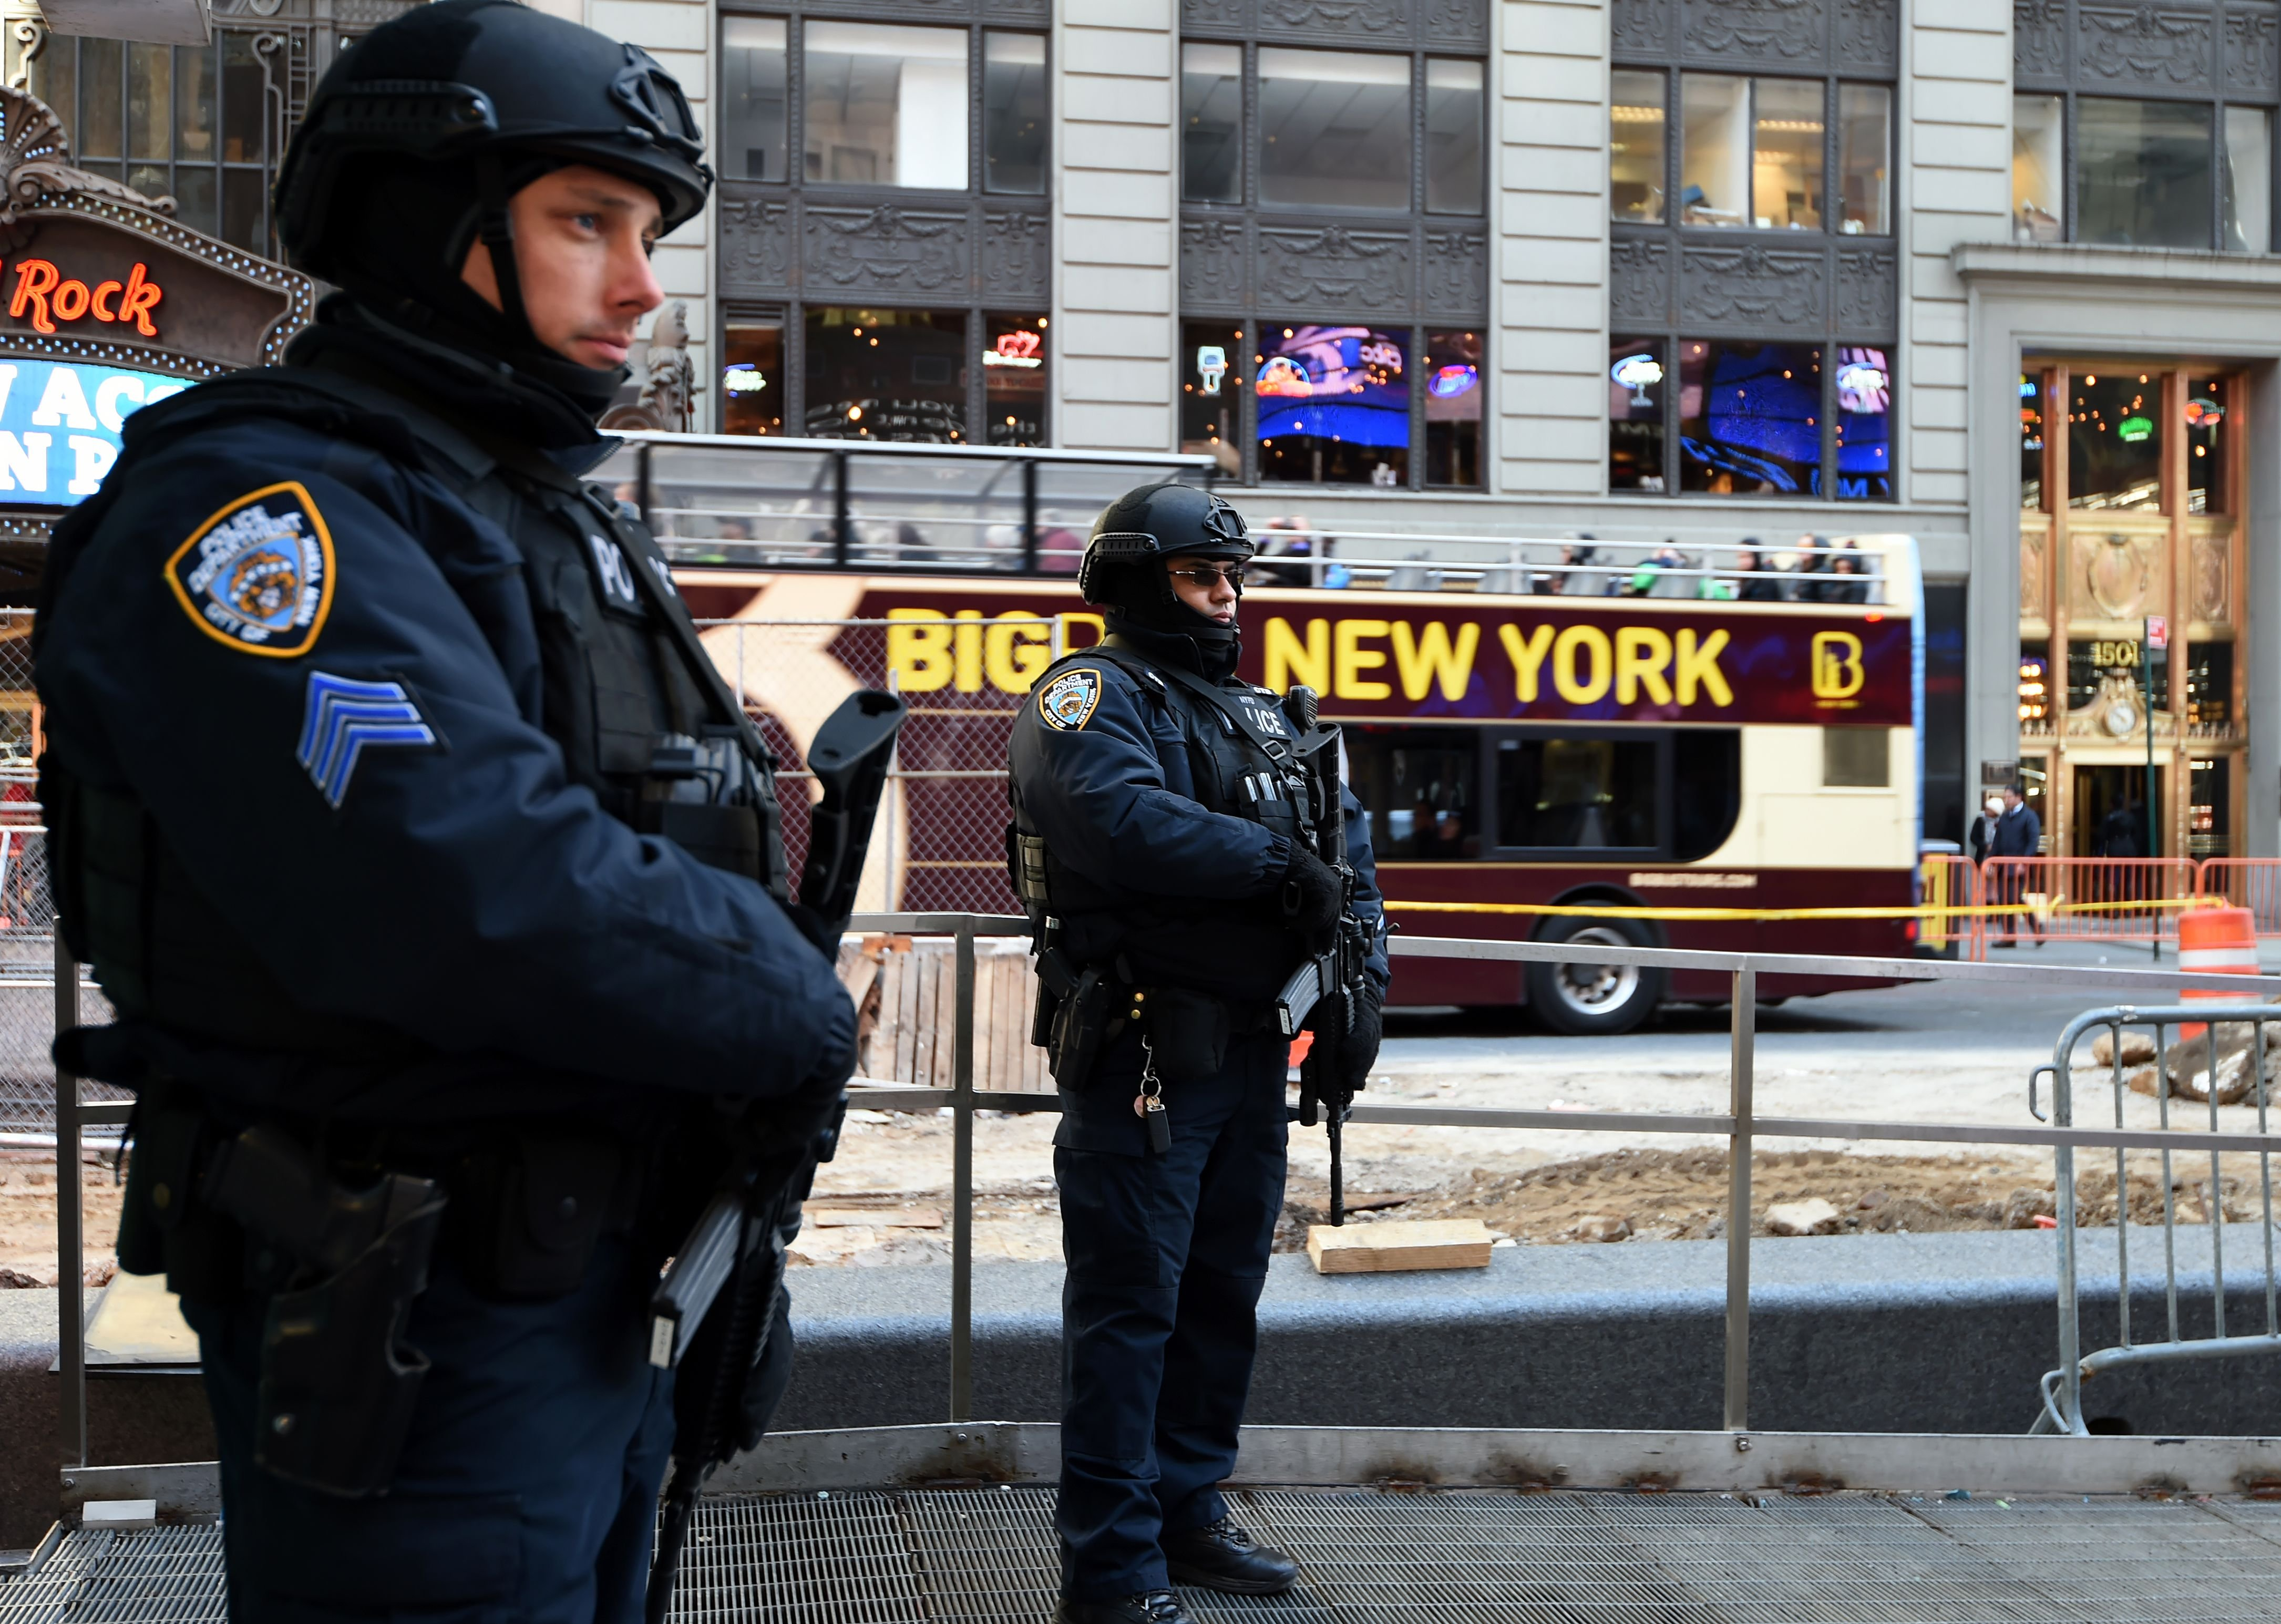 NYPD officers stand guard in Times Square, New York City, on March 22, 2016.